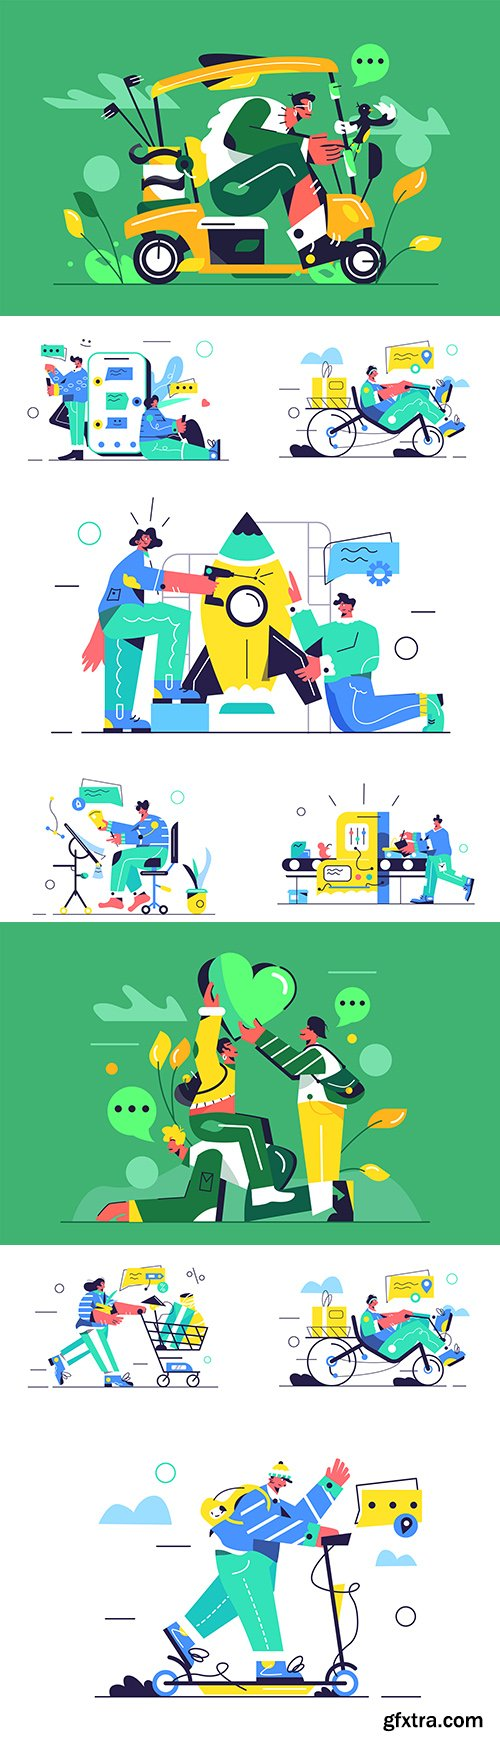 Young girl and guy in the store, at work illustrations flat design